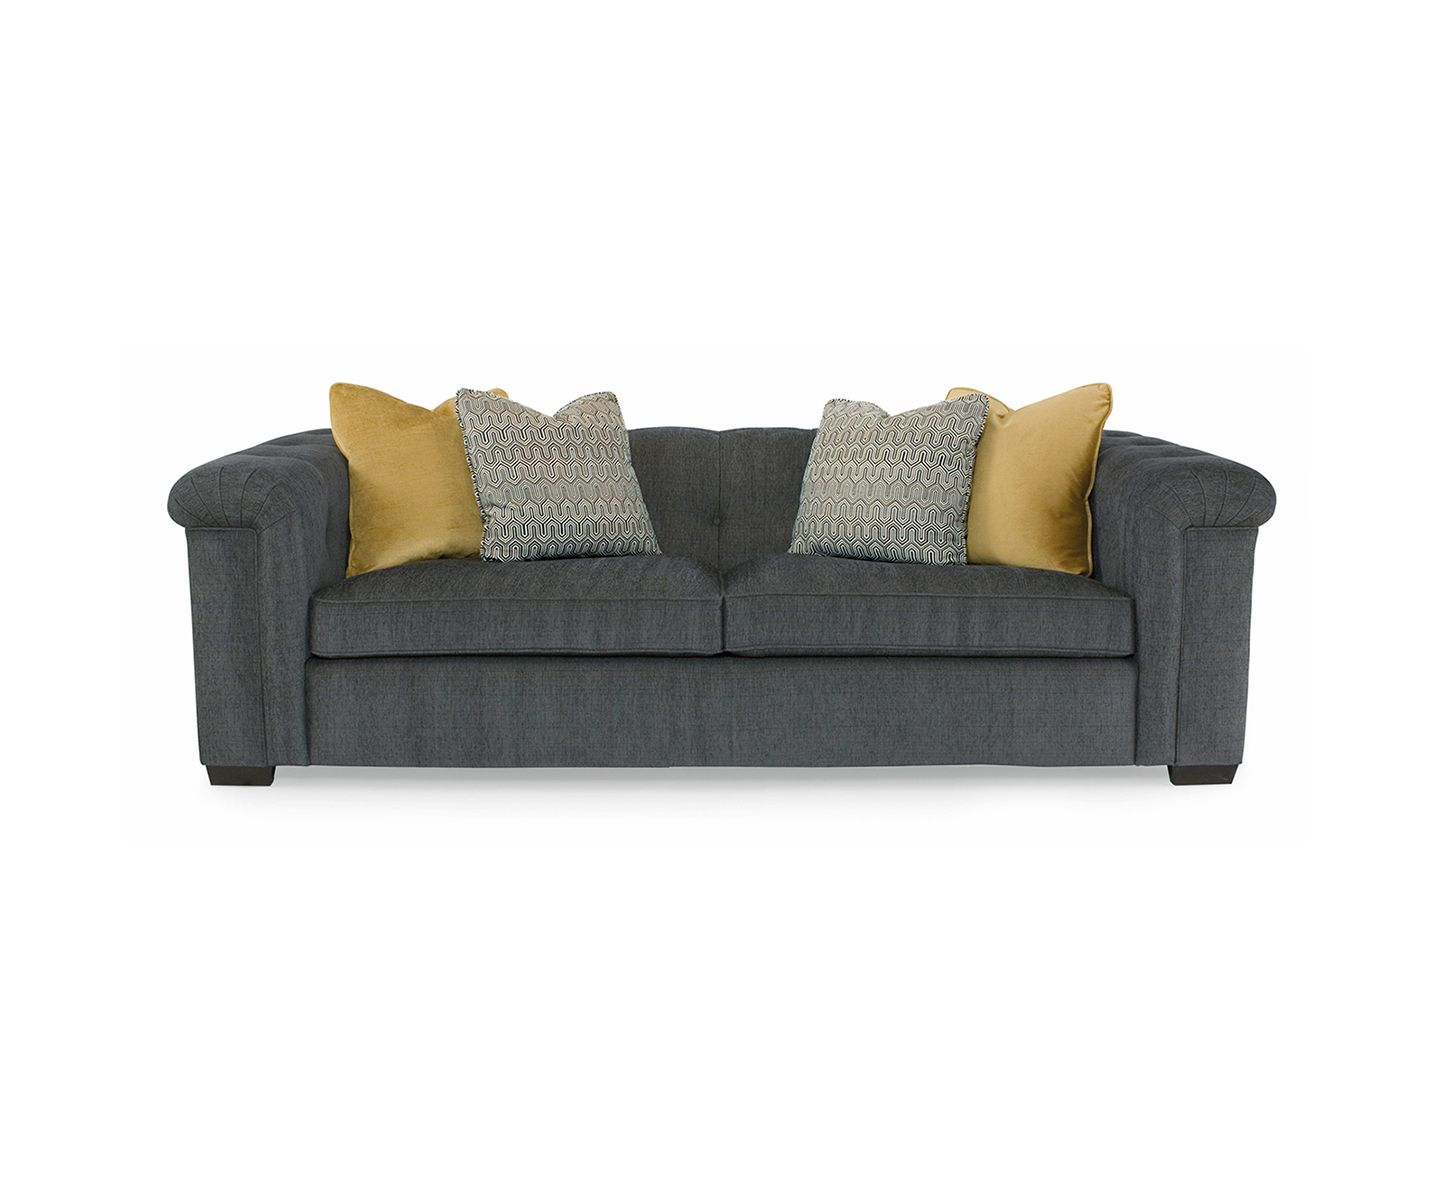 bernhardt sofas clearance aero sofa bed reviews townhouse and set collier 39s furniture expo